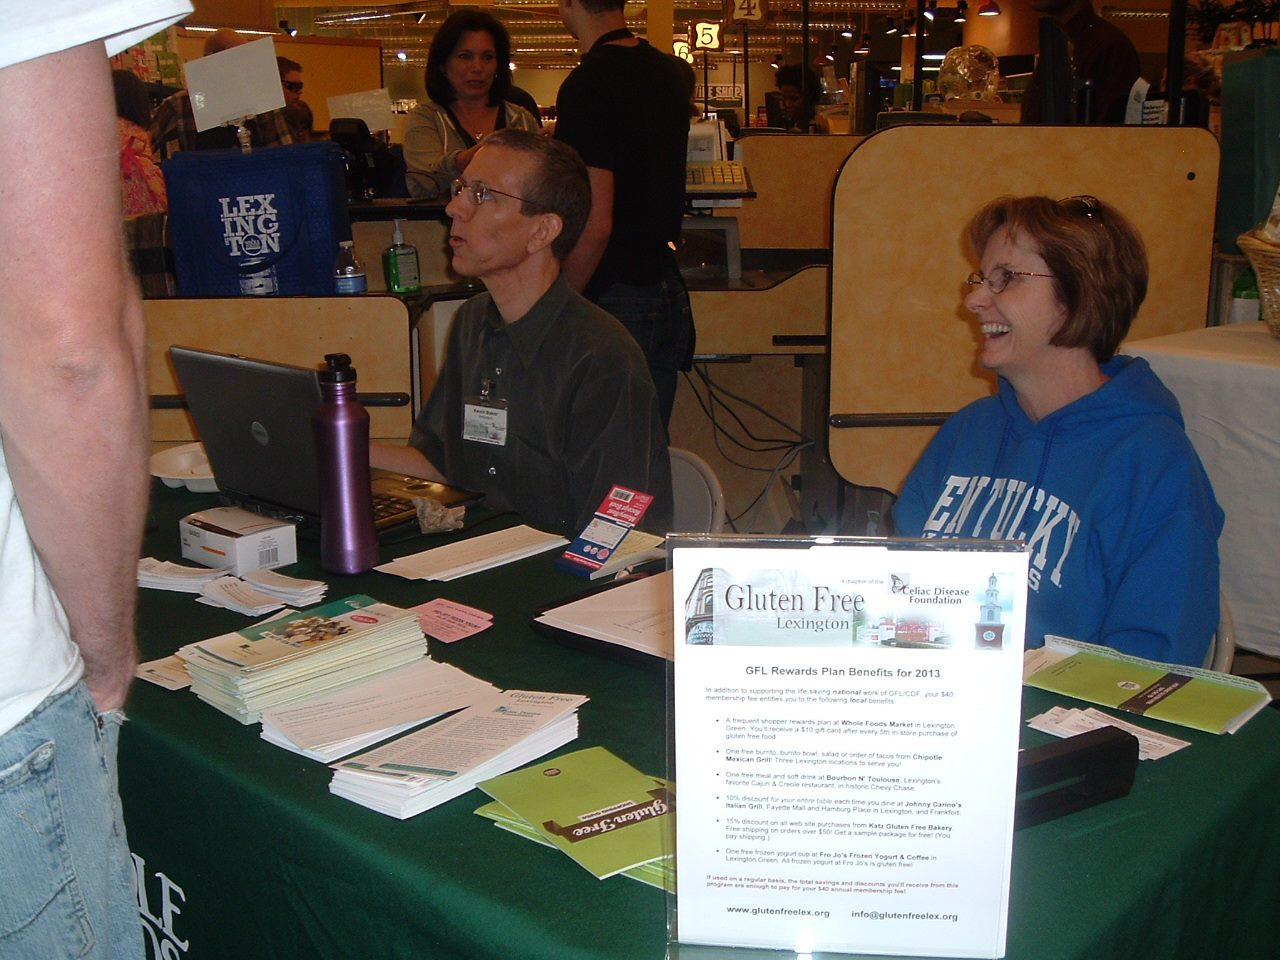 You can ALMOST read the details of GFL's amazing member-only Rewards Plan benefits. To find out why people were lining up to get these benefits, check out the JOIN GFL page of our web site at  www.glutenfreelex.org  . Free restaurant meals, free groceries at Whole Foods, and more!